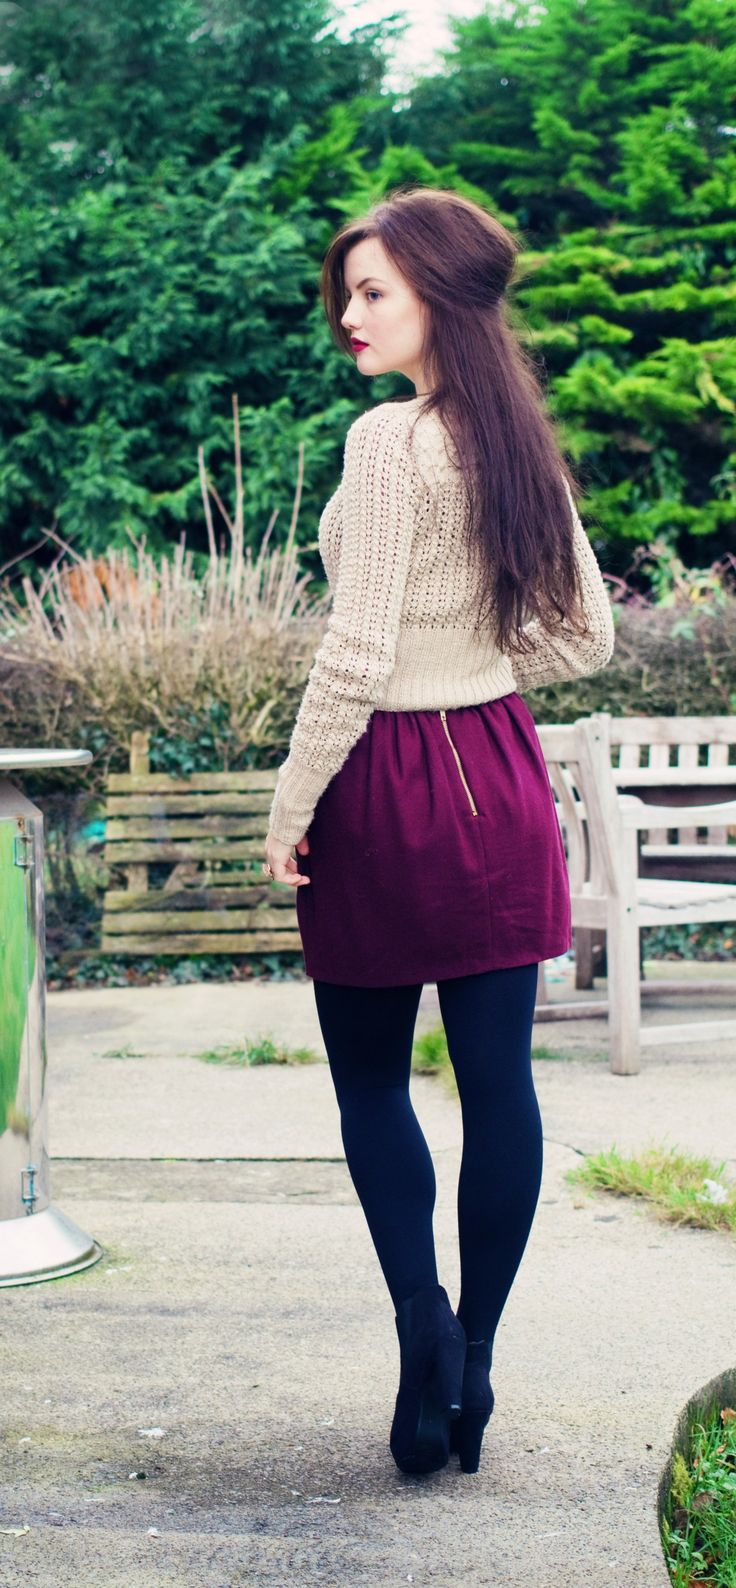 Stonor cardigan from Fyberspates Scrumptious collection. Topshop burgundy wool skirt and primark platform chelsea boots.